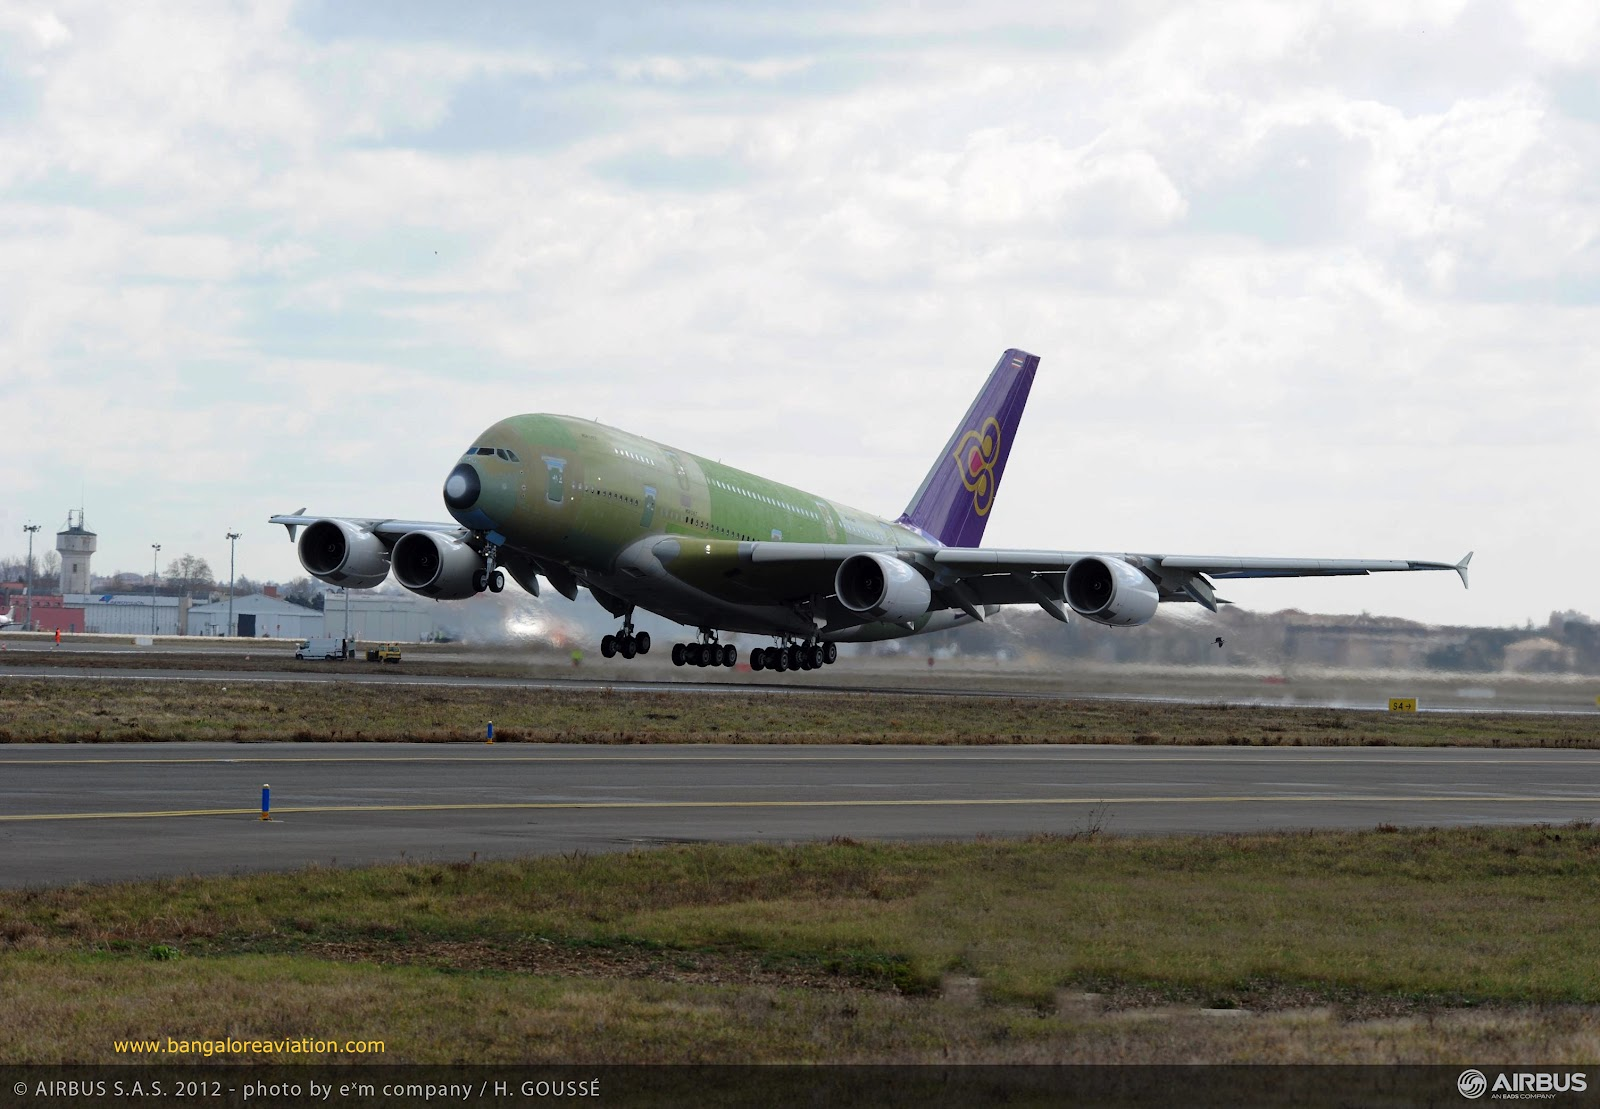 Image: Thai Airways first Airbus A380 takes-off on its first